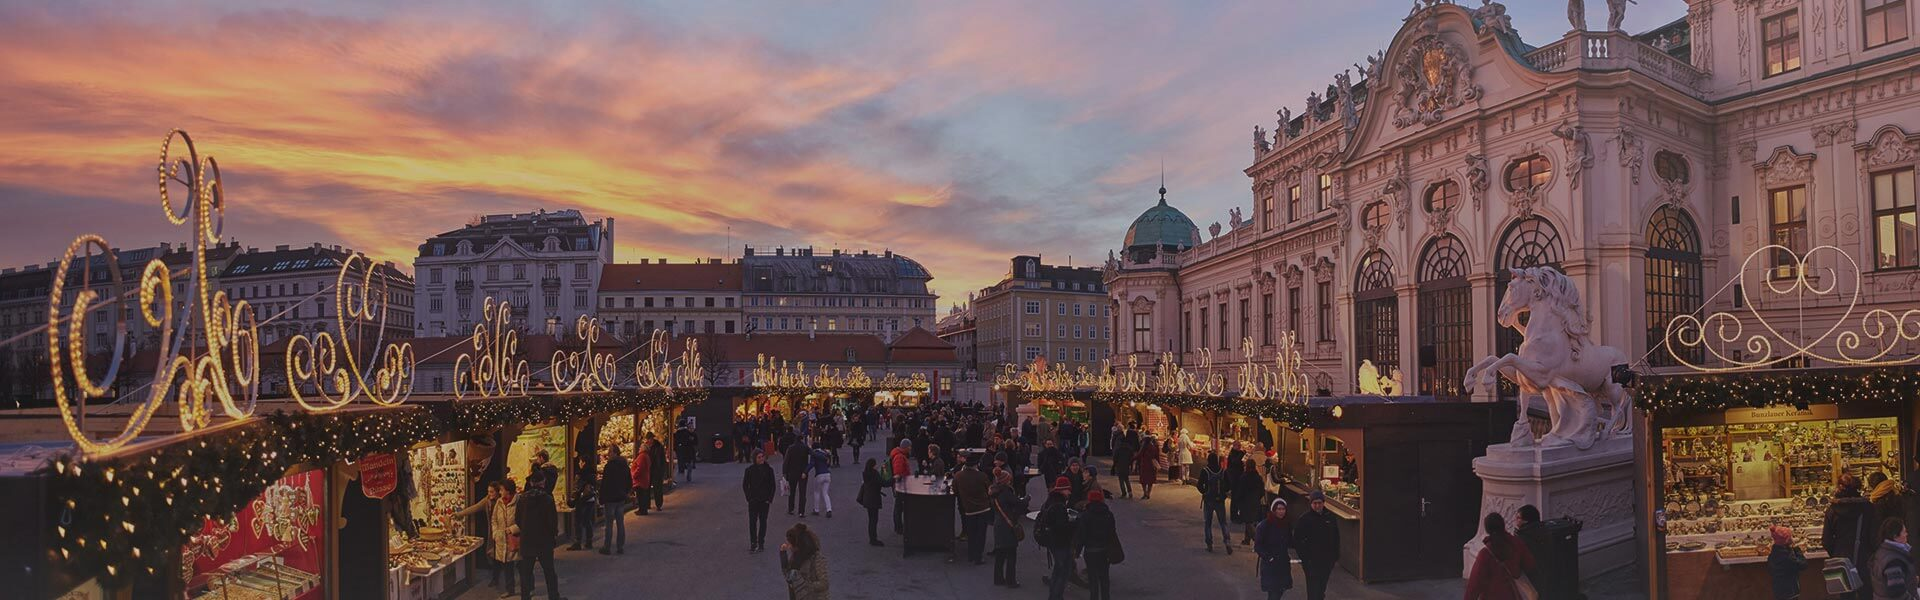 Christmas Markets at Belvedere Palace